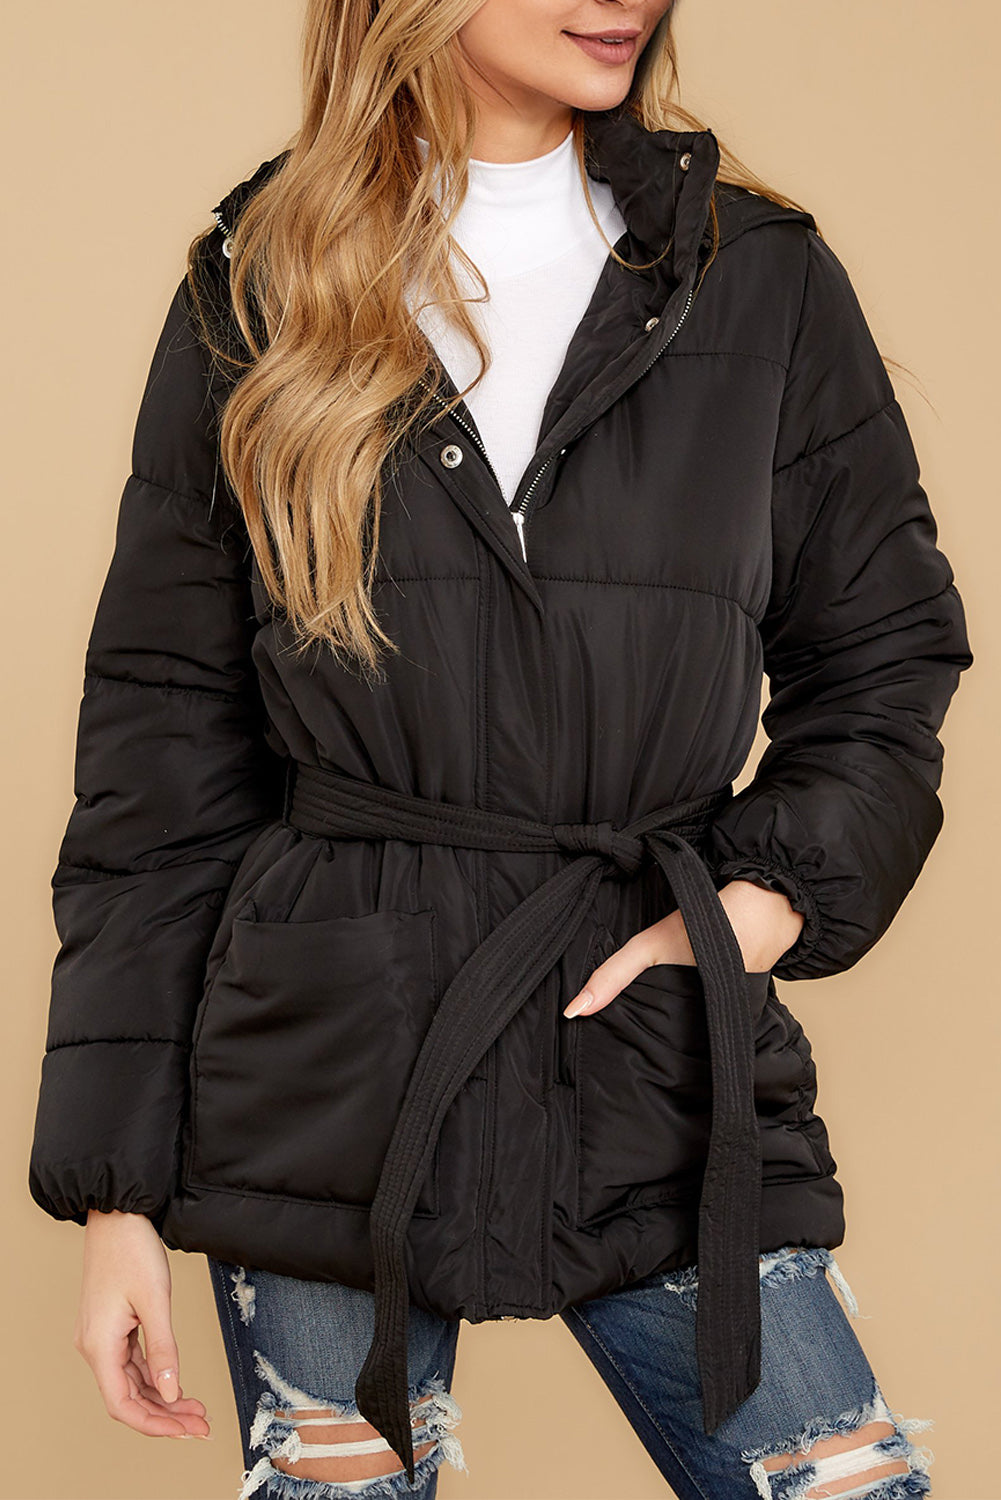 Black Puffer Jacket Suits & Coats Discount Designer Fashion Clothes Shoes Bags Women Men Kids Children Black Owned Business